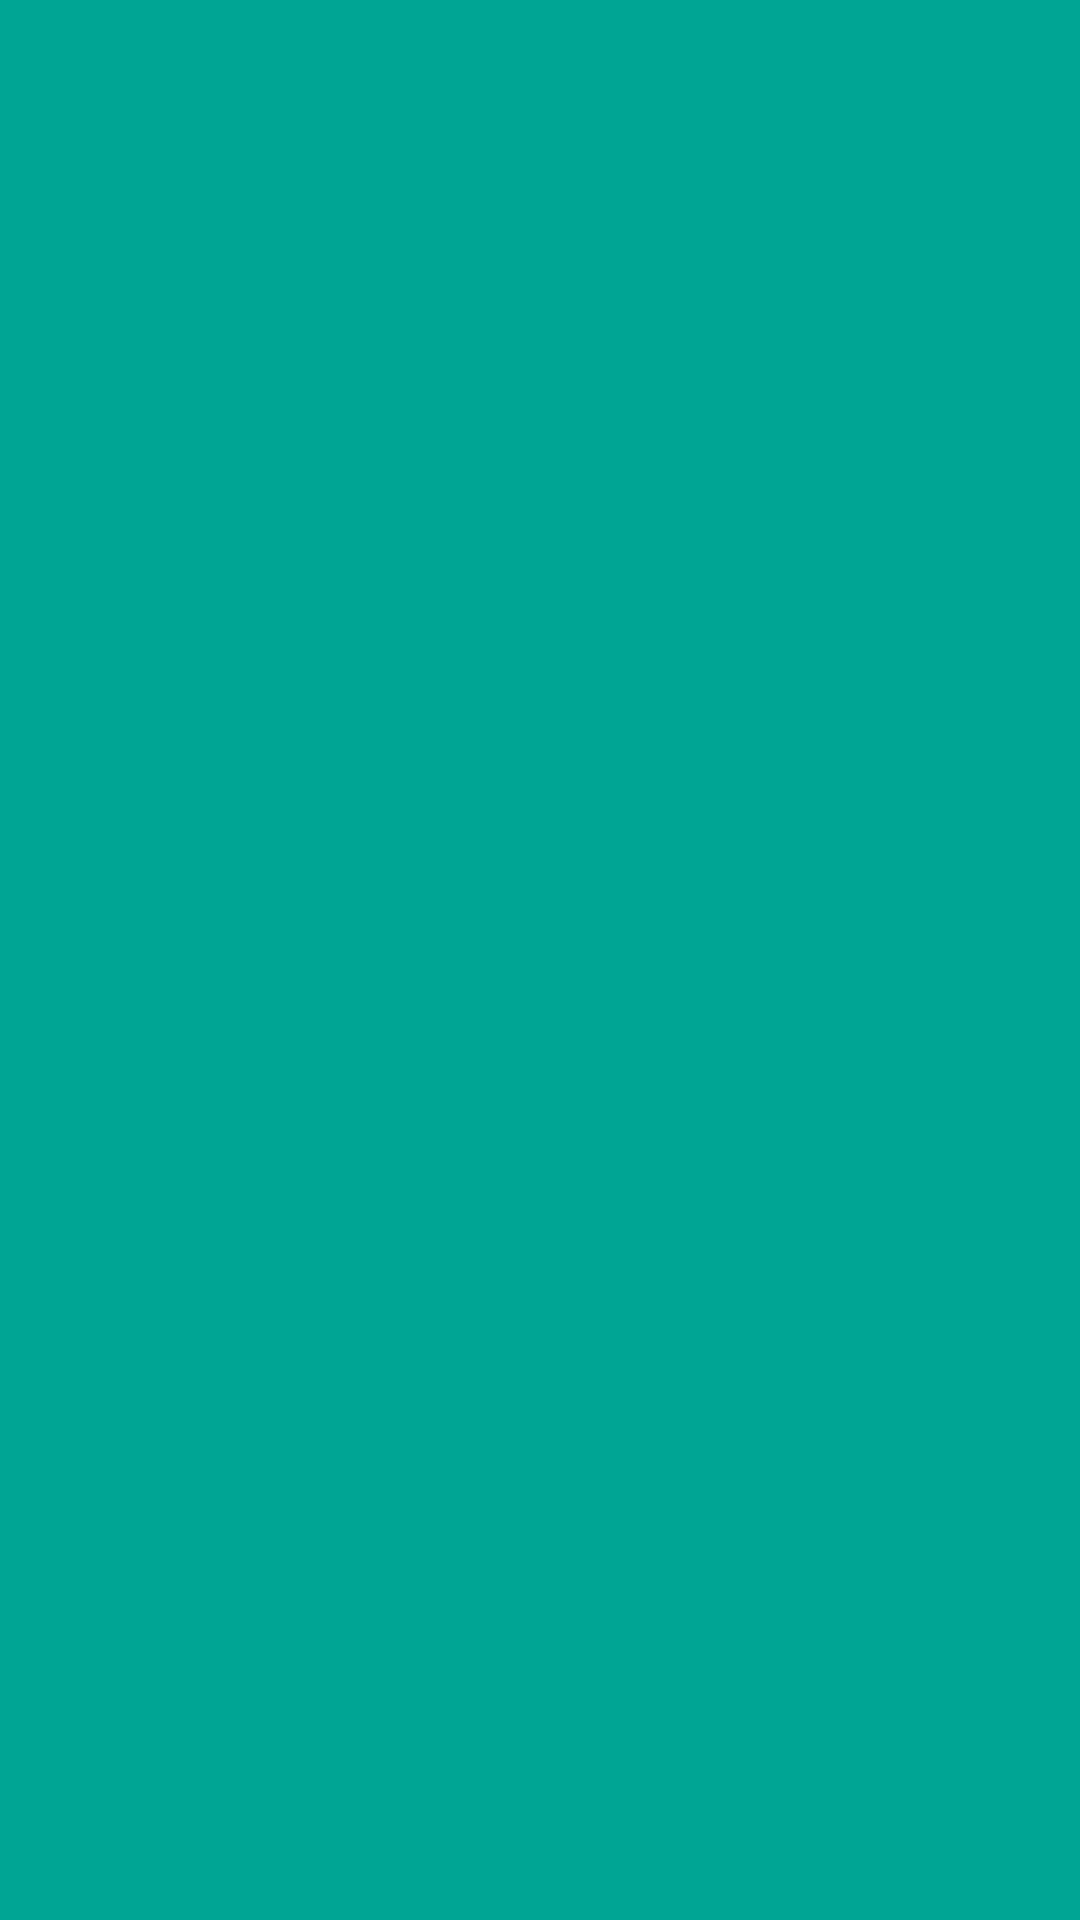 1080x1920 Persian Green Solid Color Background